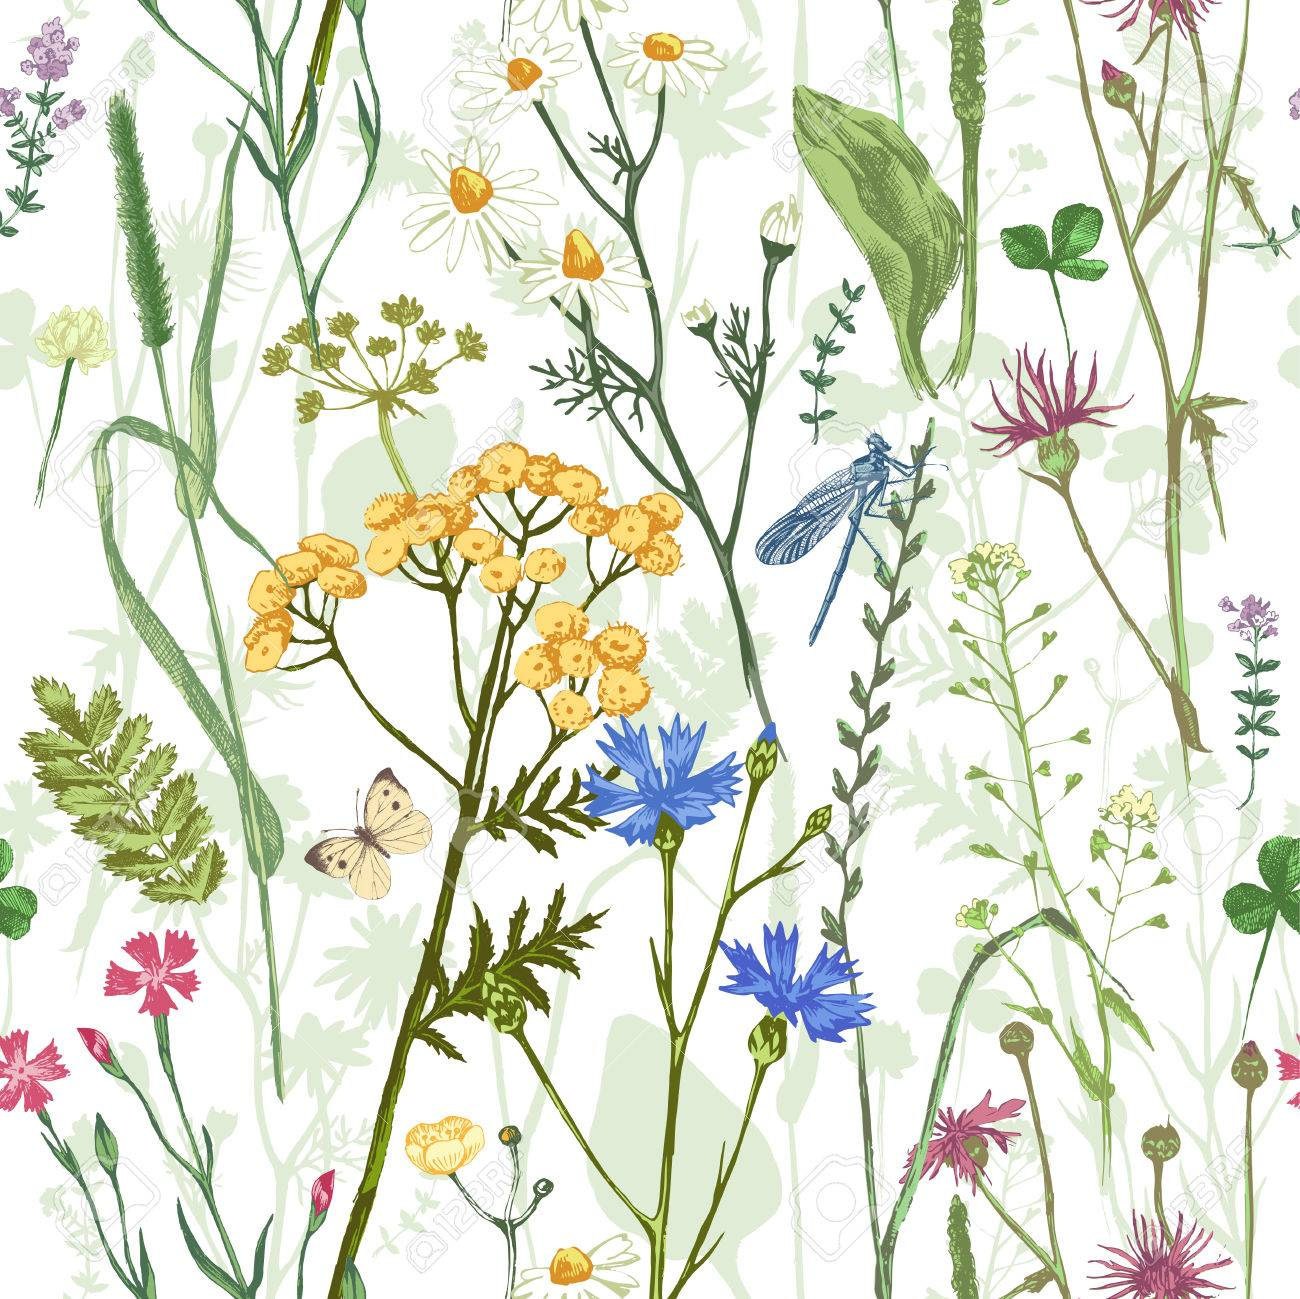 Hand drawn seamless pattern with colorful herbs and flowers - 64111339